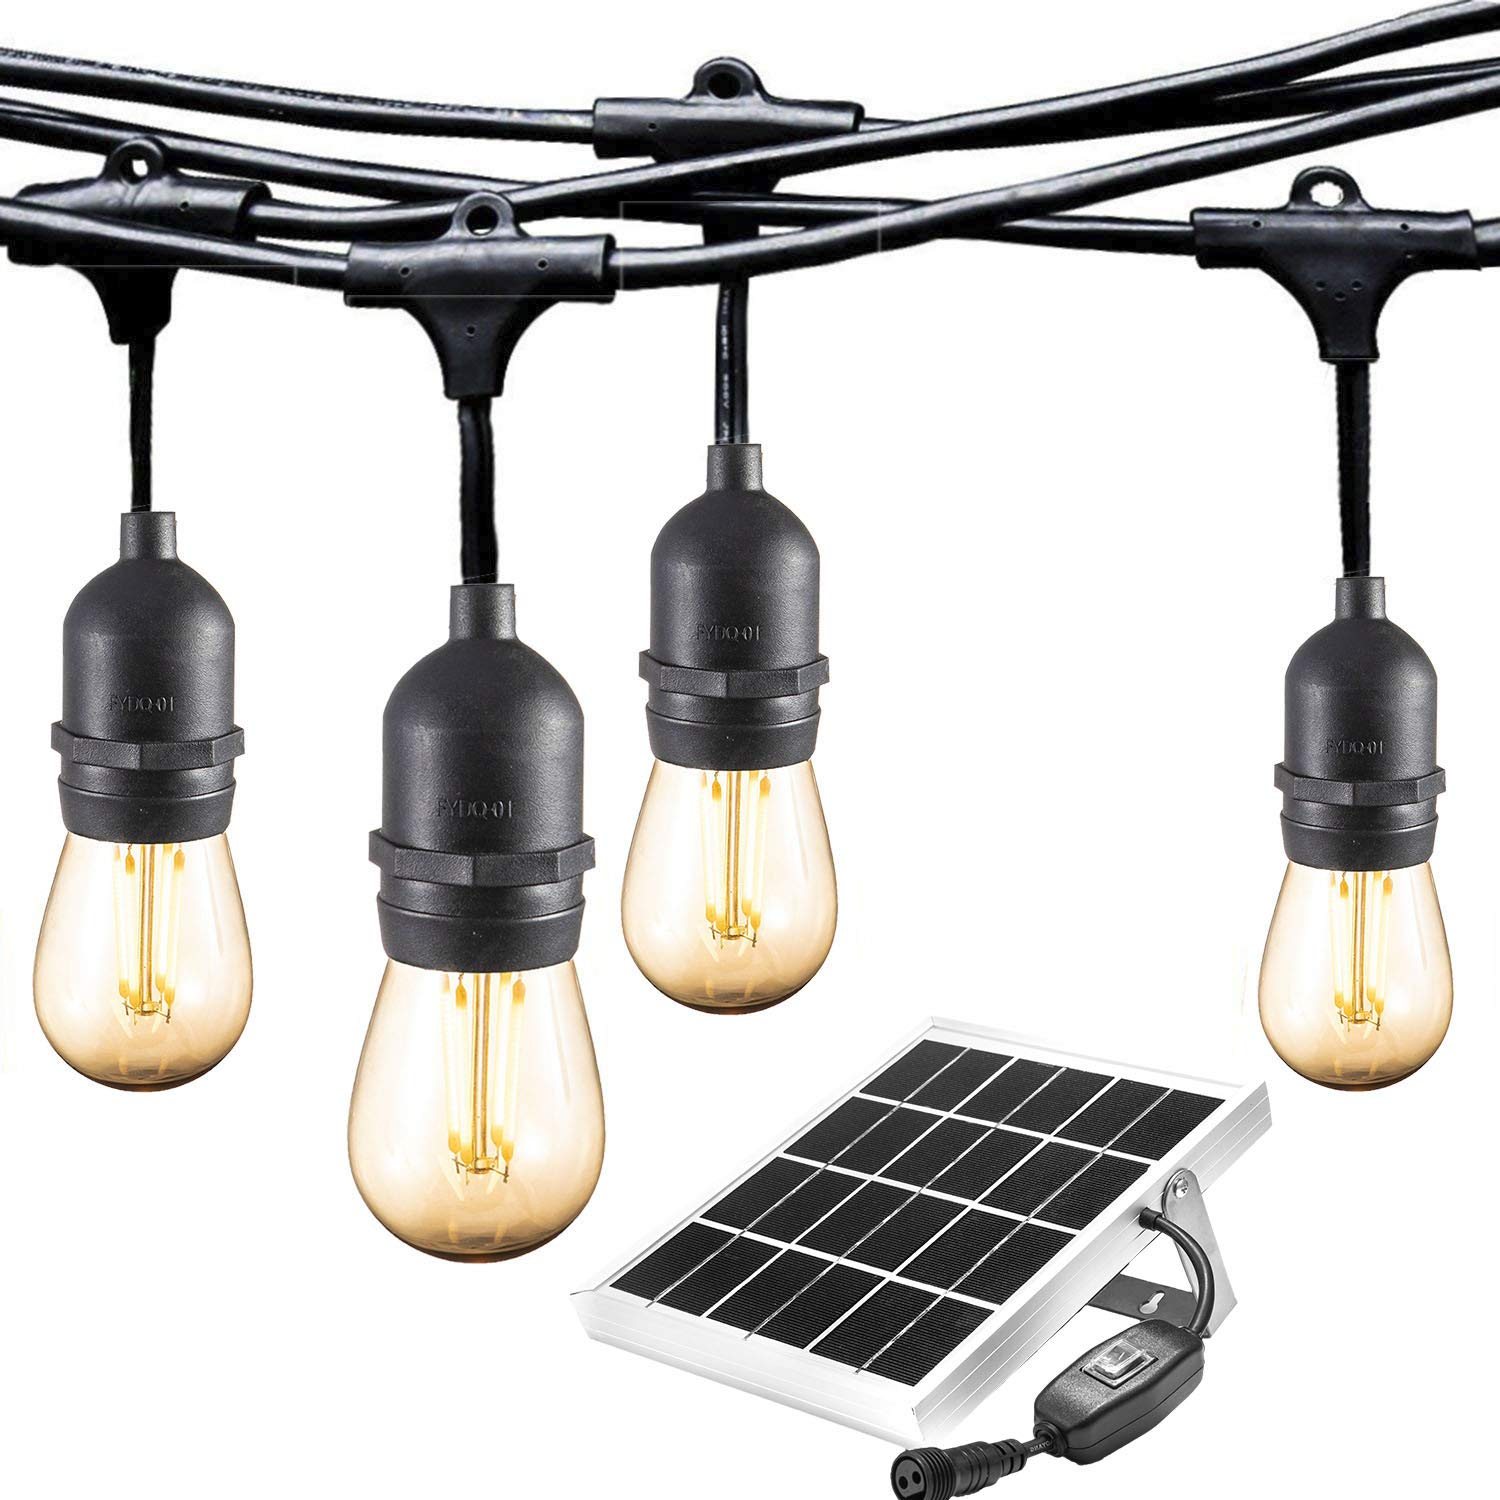 ASHIA LIGHT Ashialight Waterproof Solar LED Outdoor String Lights- Low Voltage, Hanging Socket, Vintage Edison Bulb- 25ft Heavy Duty Bistro Lights Create Cafe Ambience for Patio and Backyard